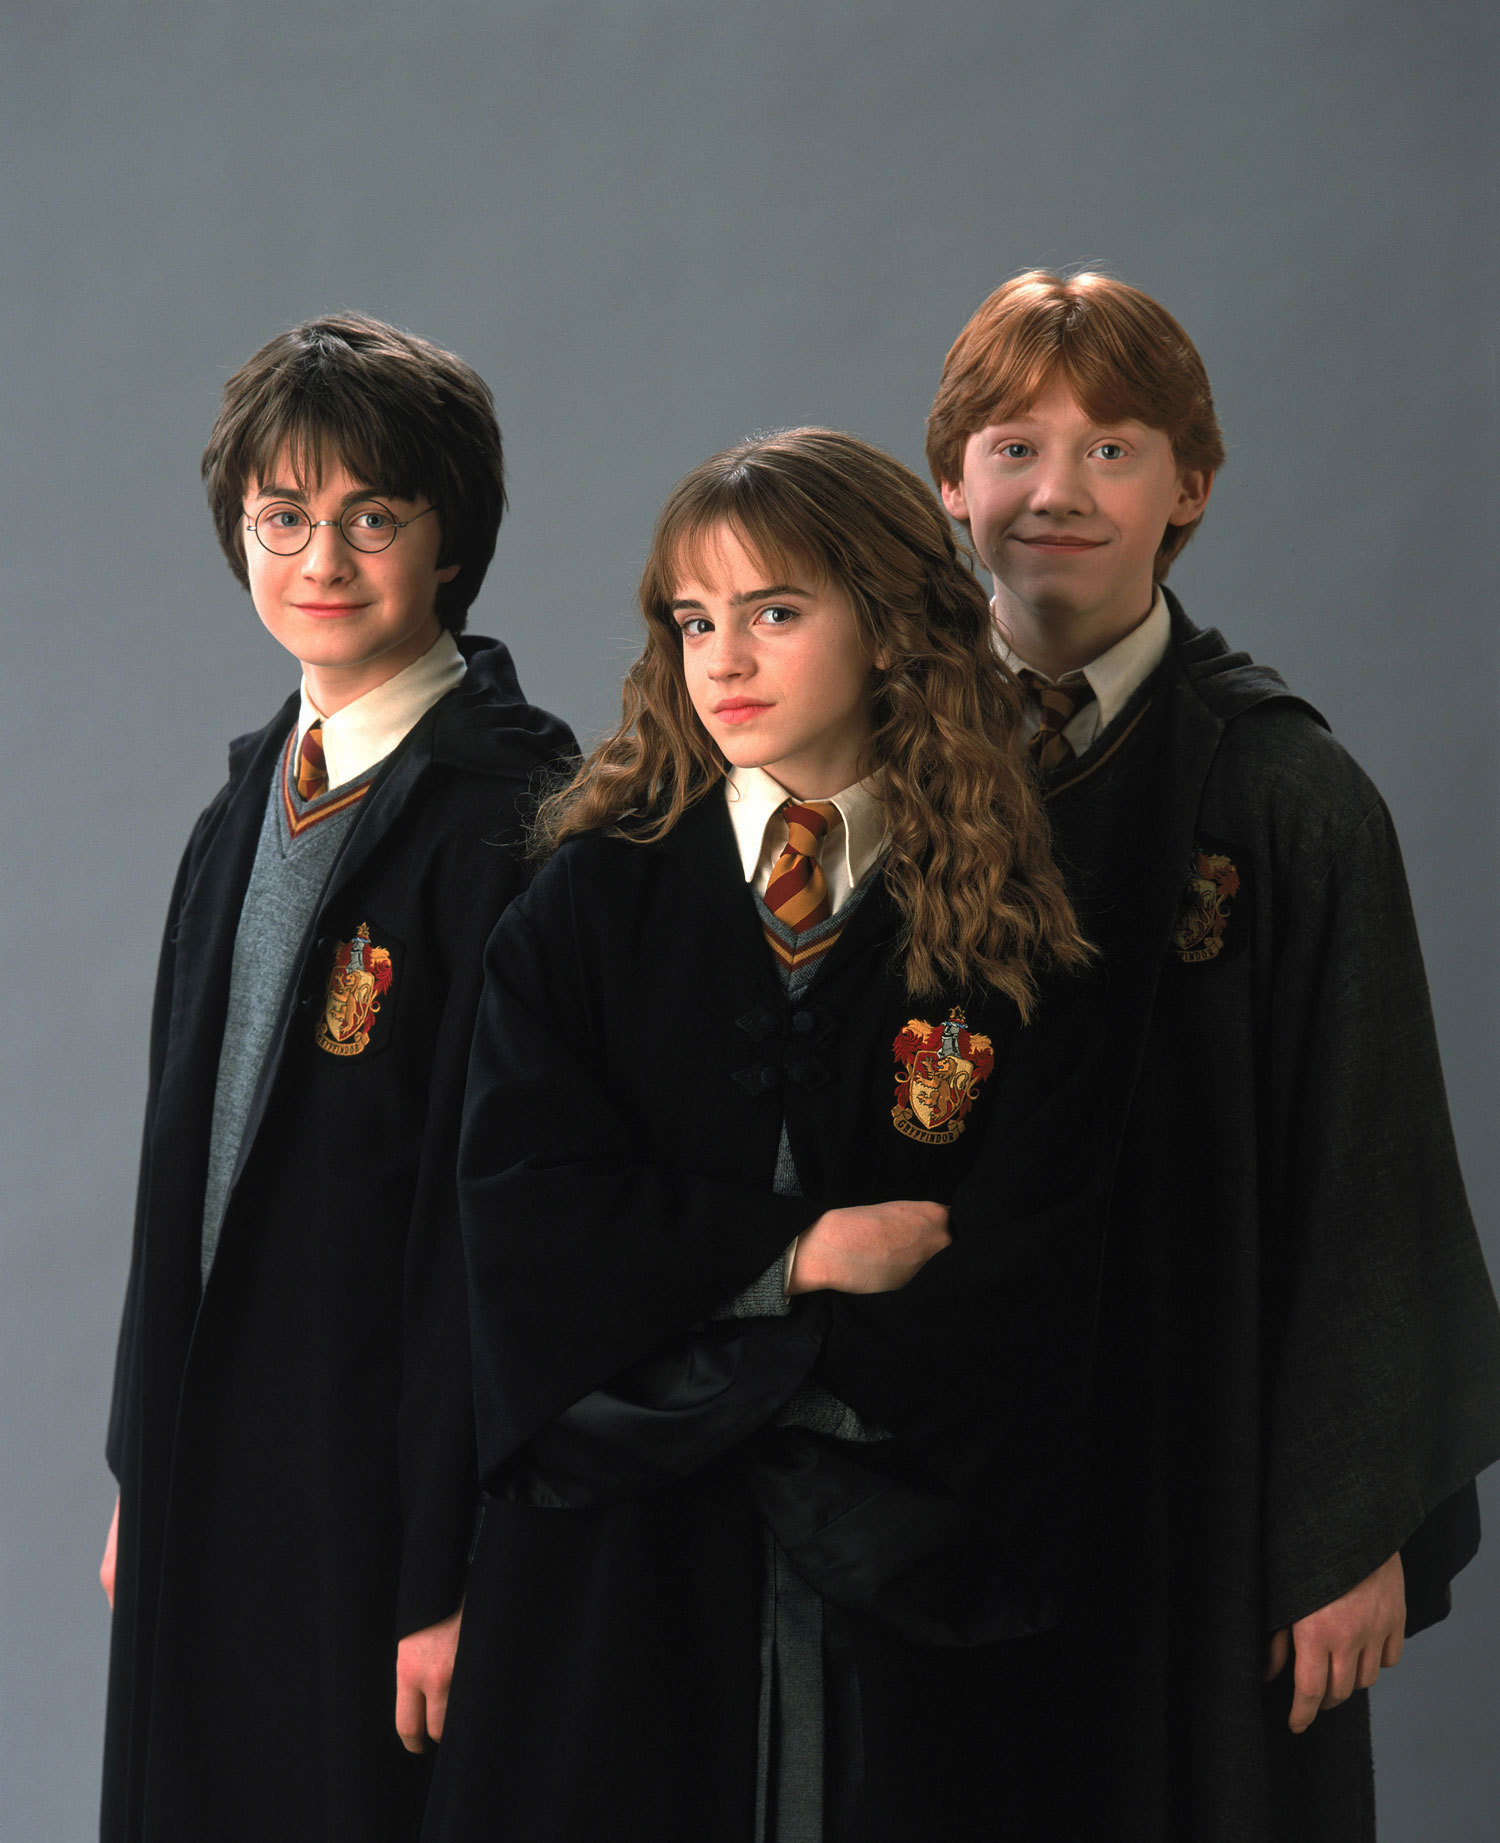 Harry potter amp ron threesome with milf hentai game